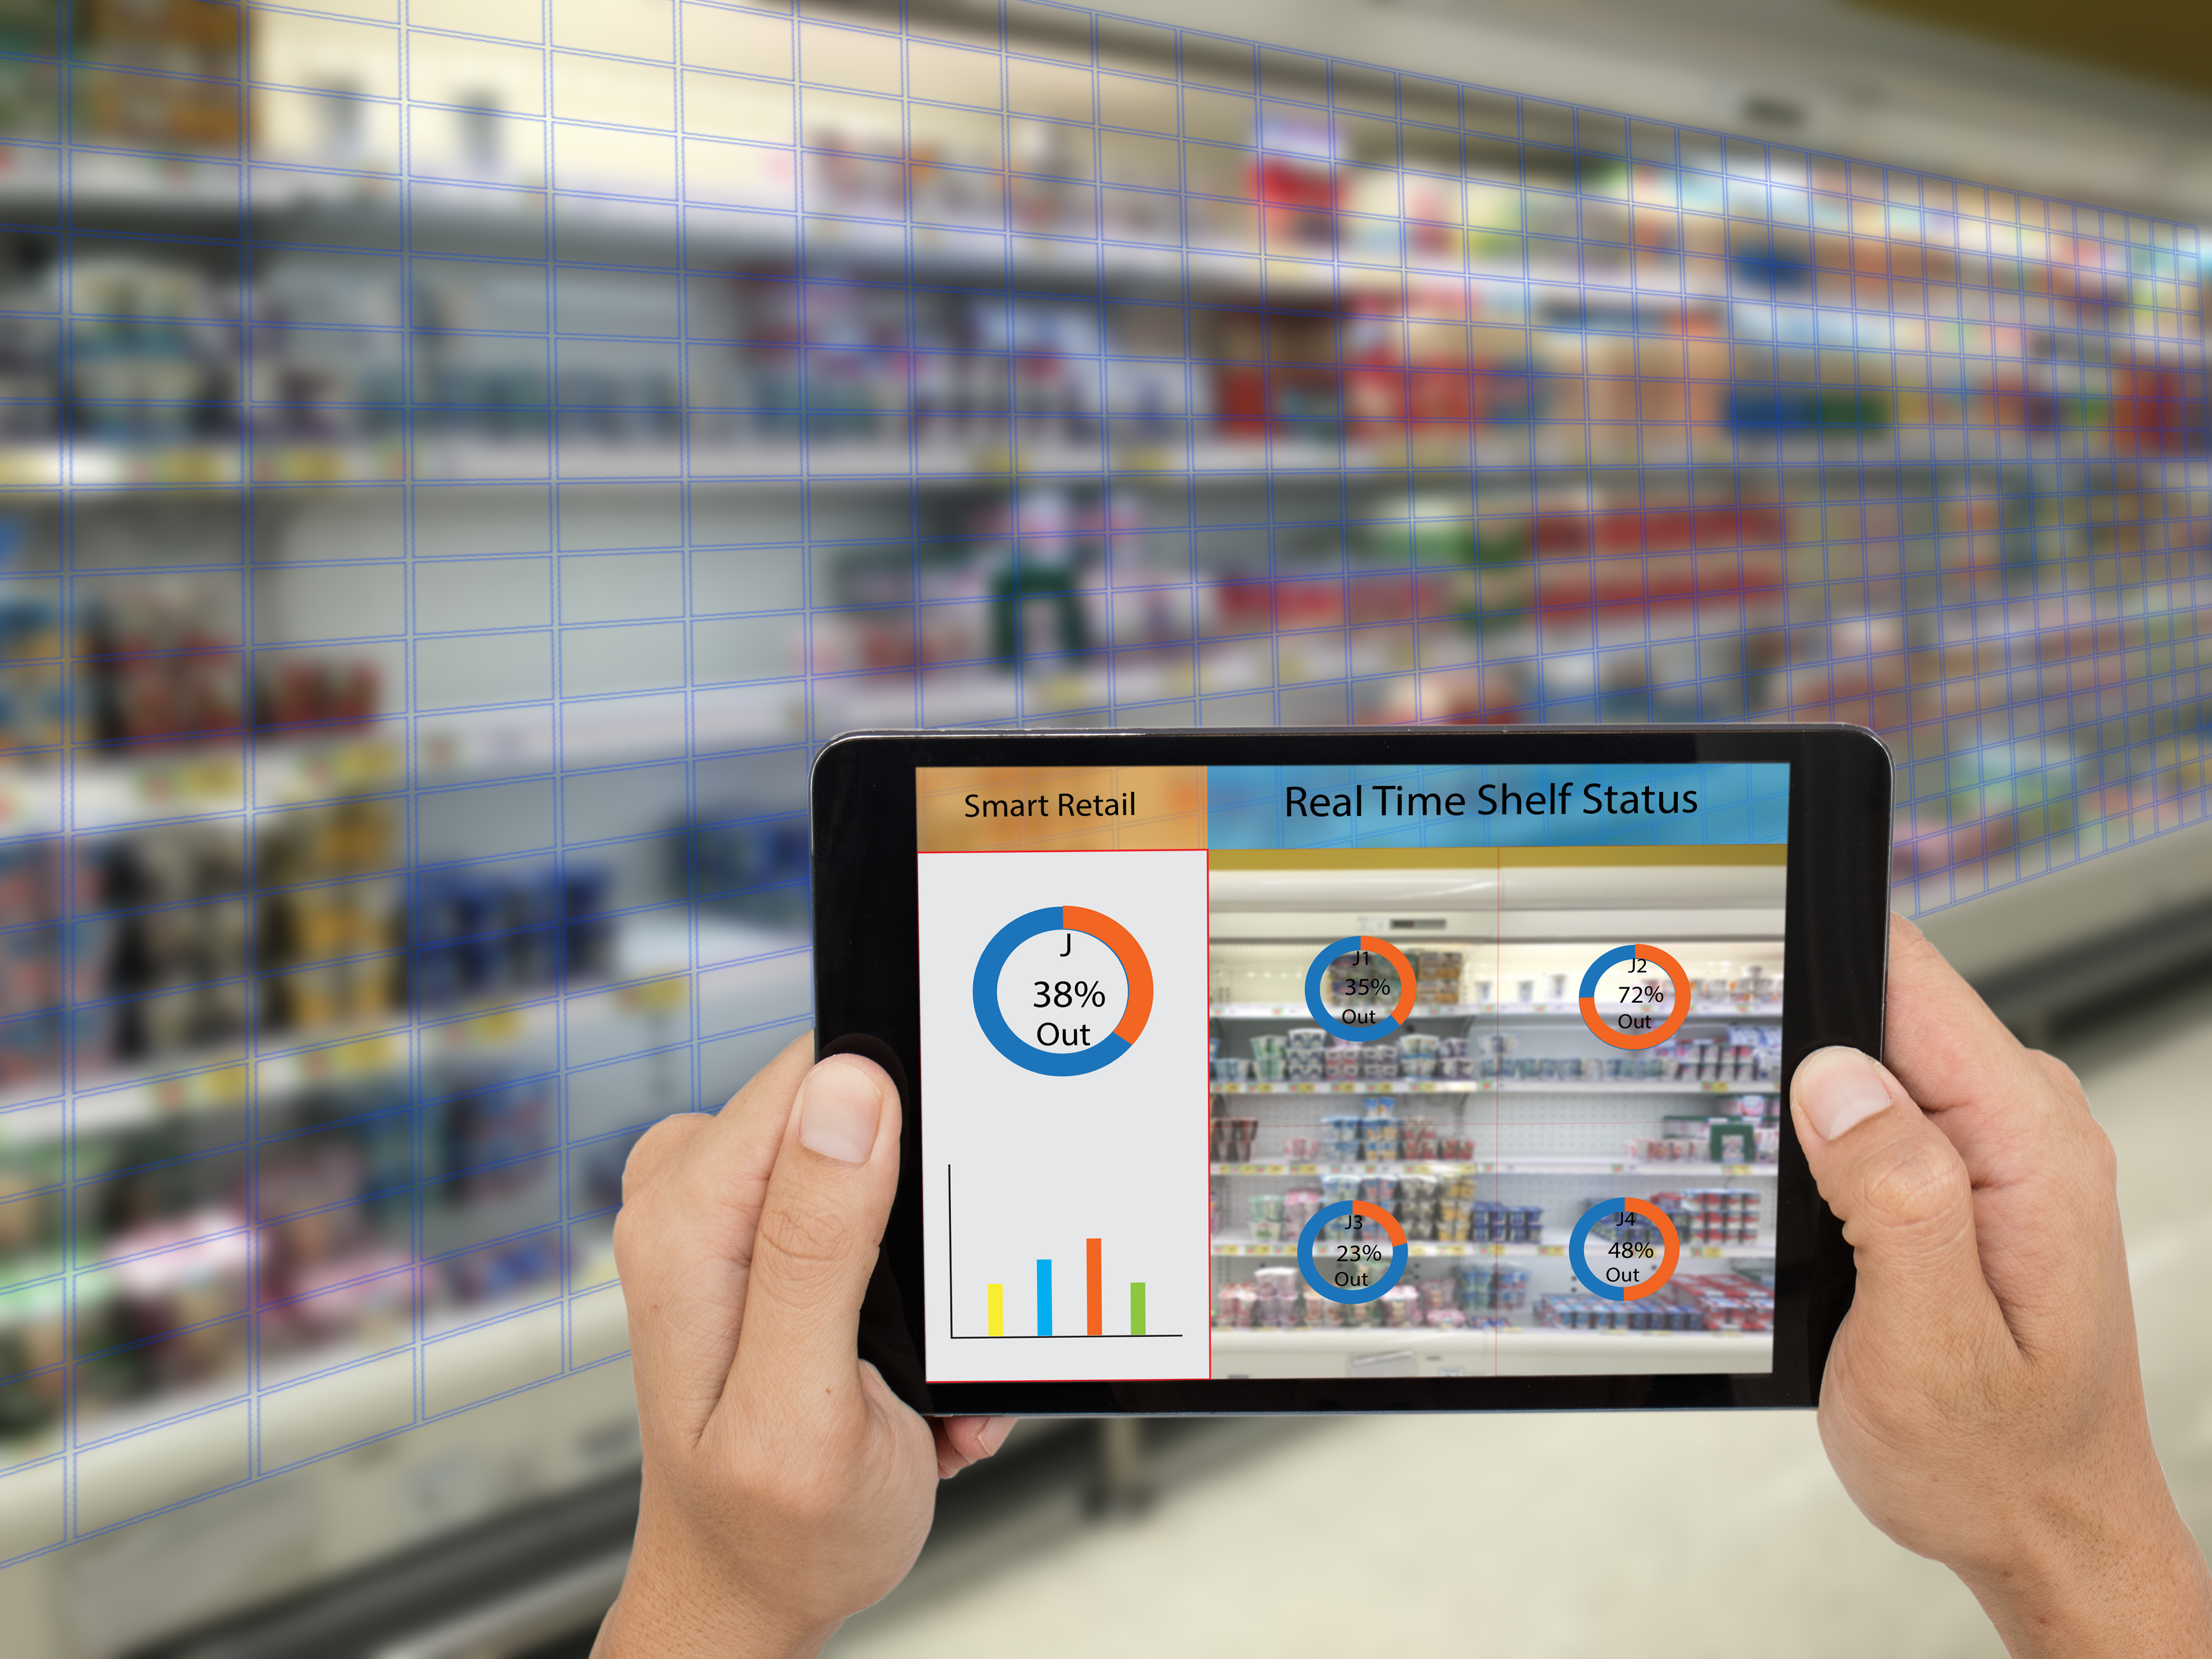 Smart retail - How DataOps can increase efficiency in retail